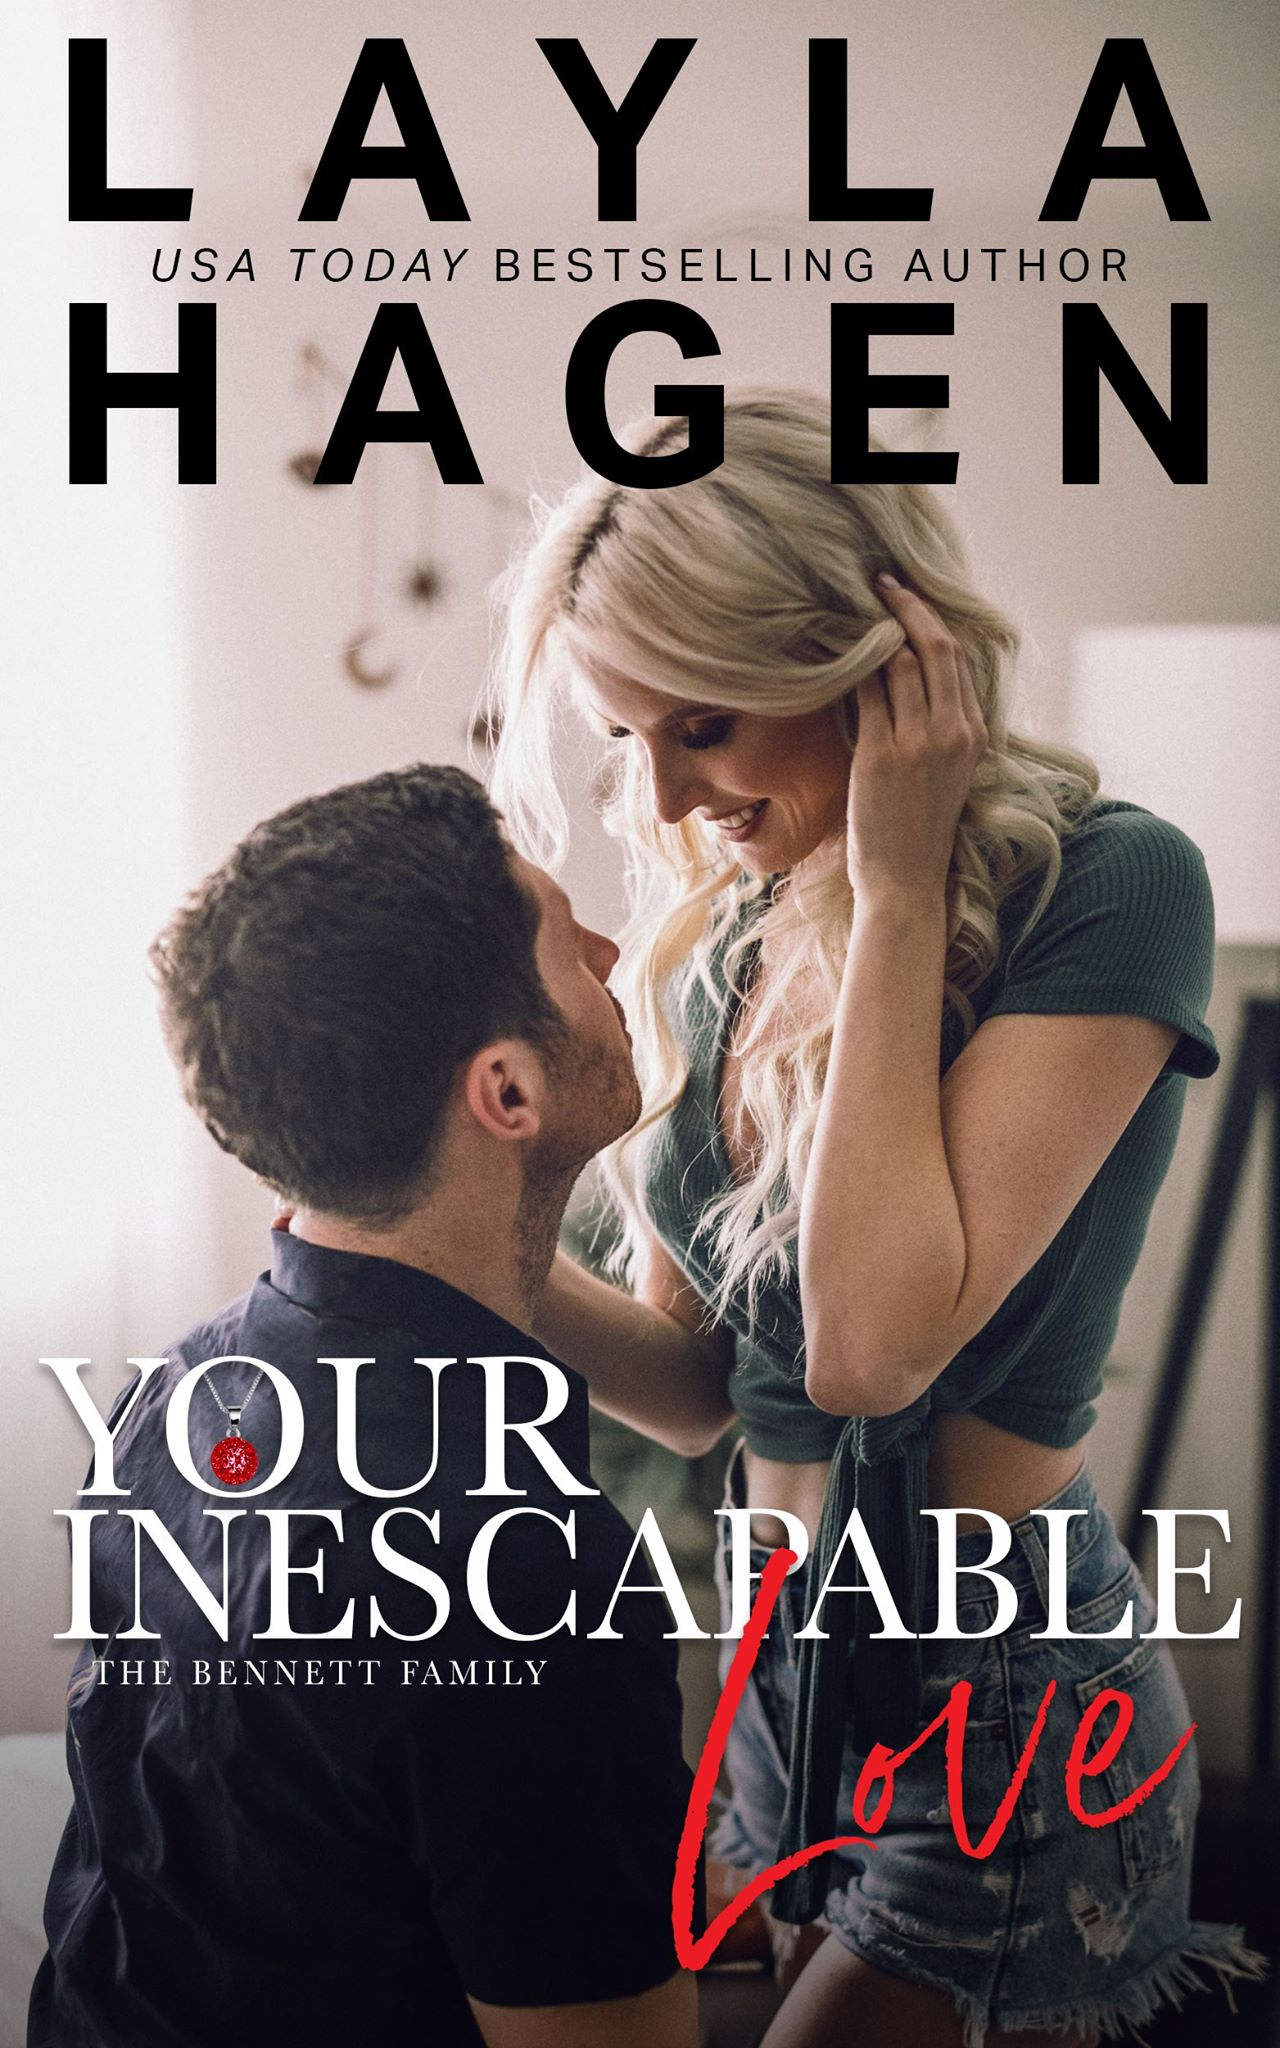 Your Inescapable Love (The Bennett Family, #4)